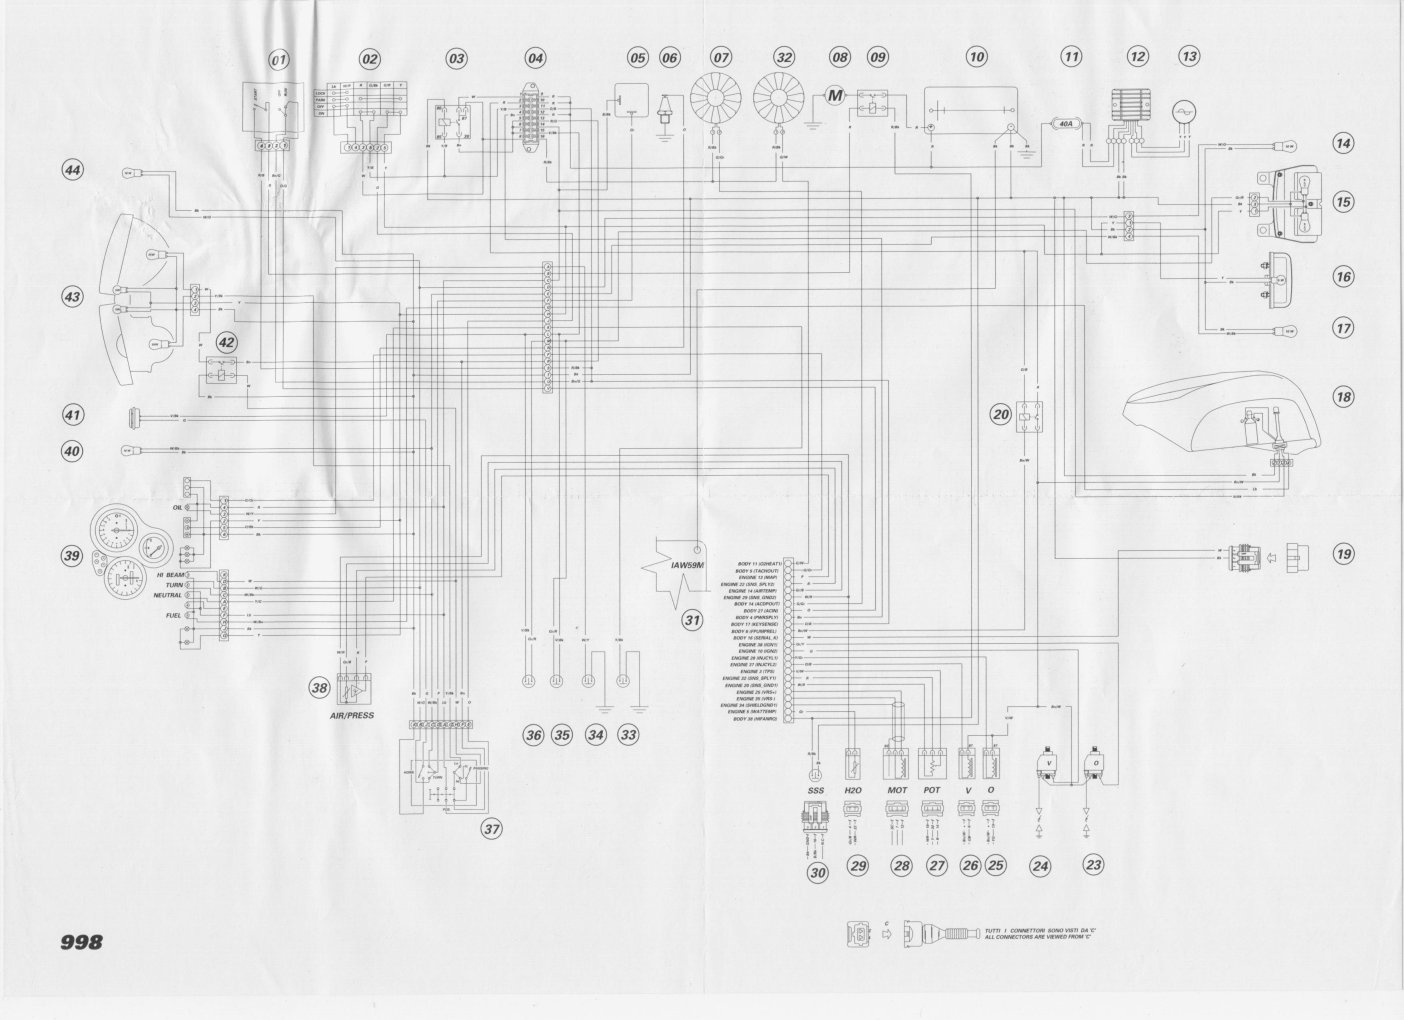 hight resolution of ducati wiring schematics schema wiring diagramducati electrical diagrams wiring diagram inside ducati radio wiring diagrams wiring